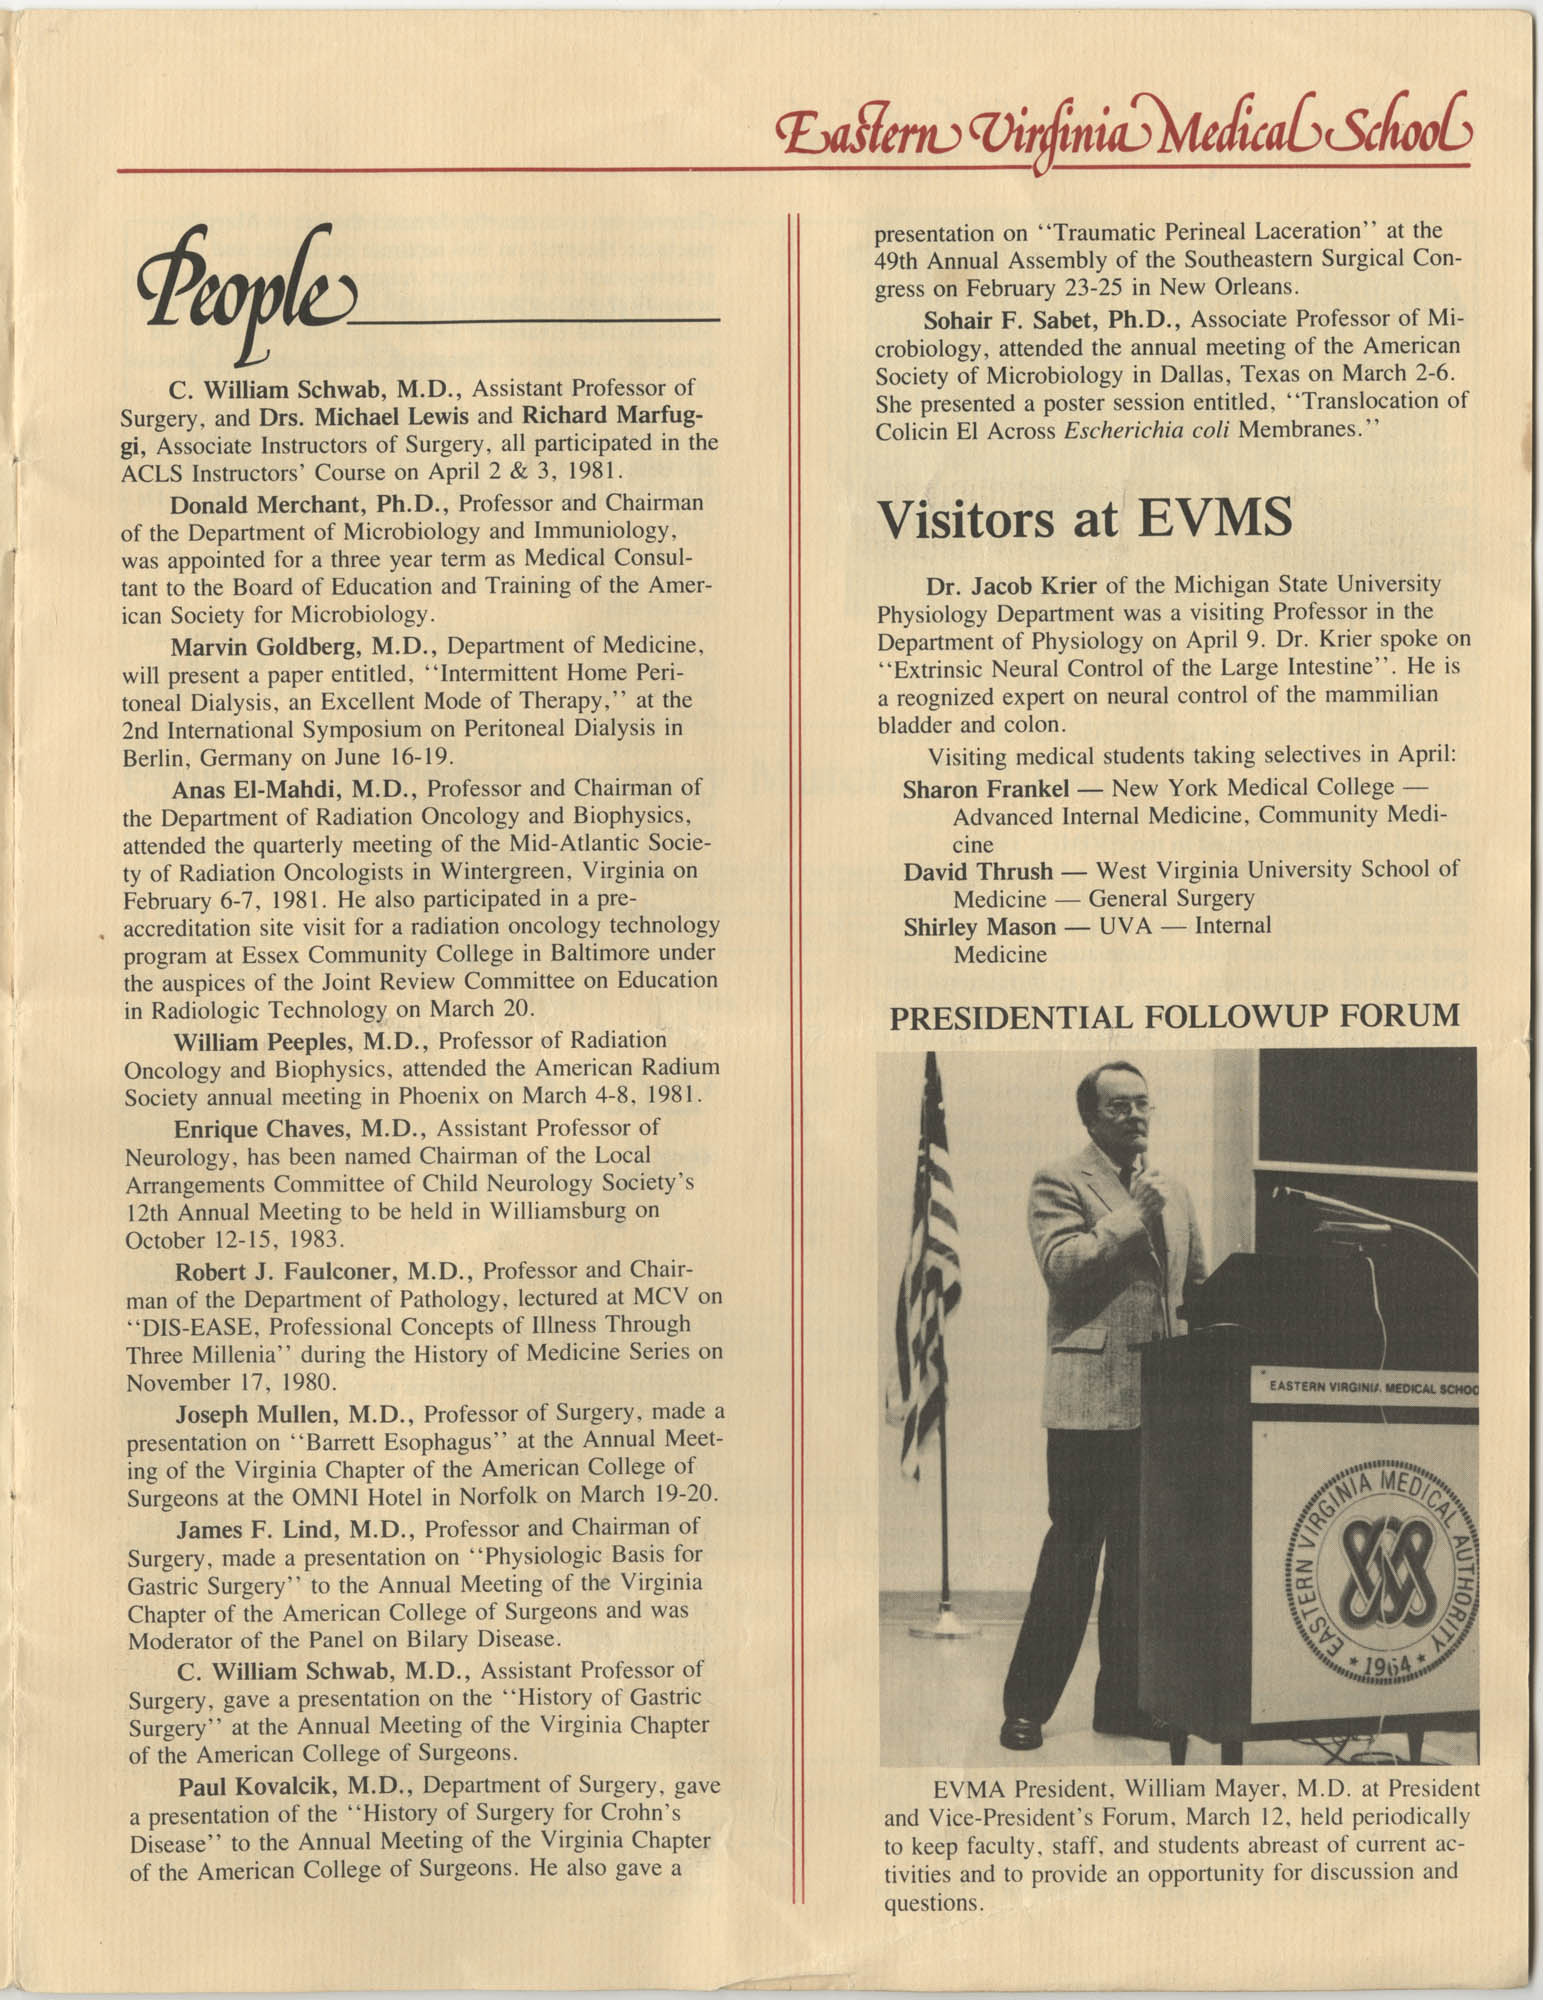 Eastern Virginia Medical School, Dean's Newsletter, Volume 4, Number 5, Page 3